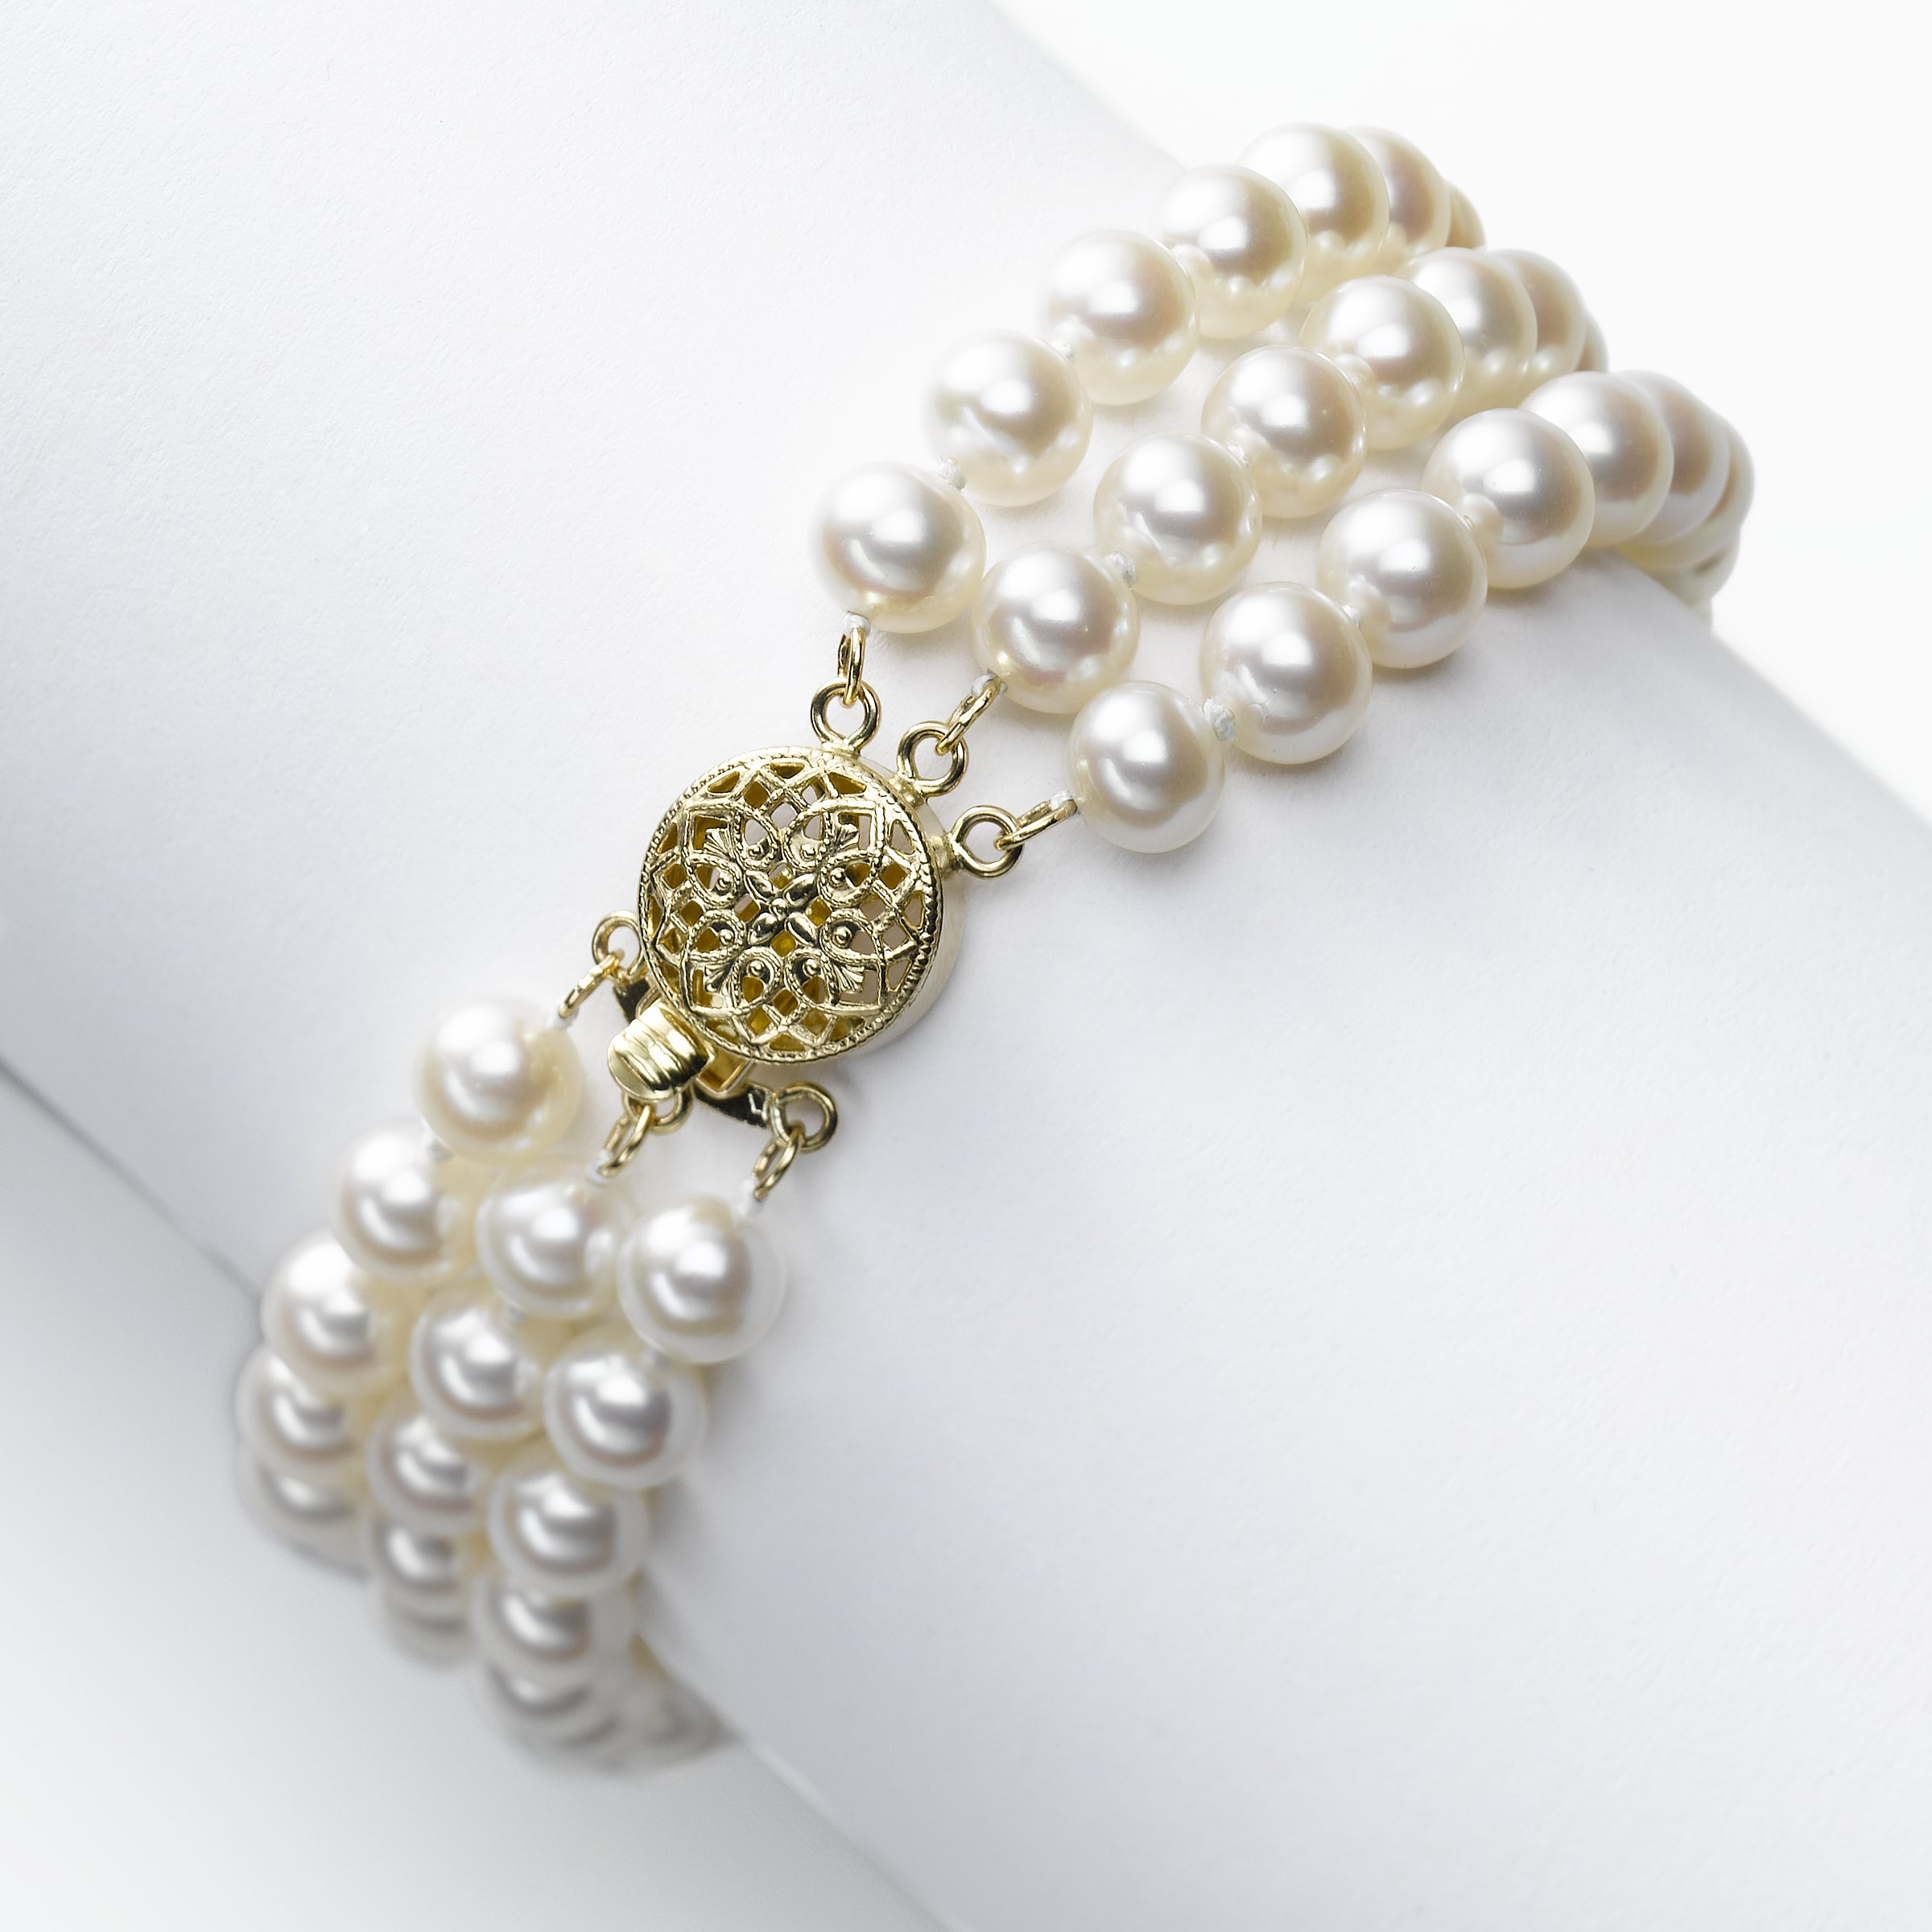 3 Row Freshwater Cultured Pearl Bracelet, 14K Yellow Gold